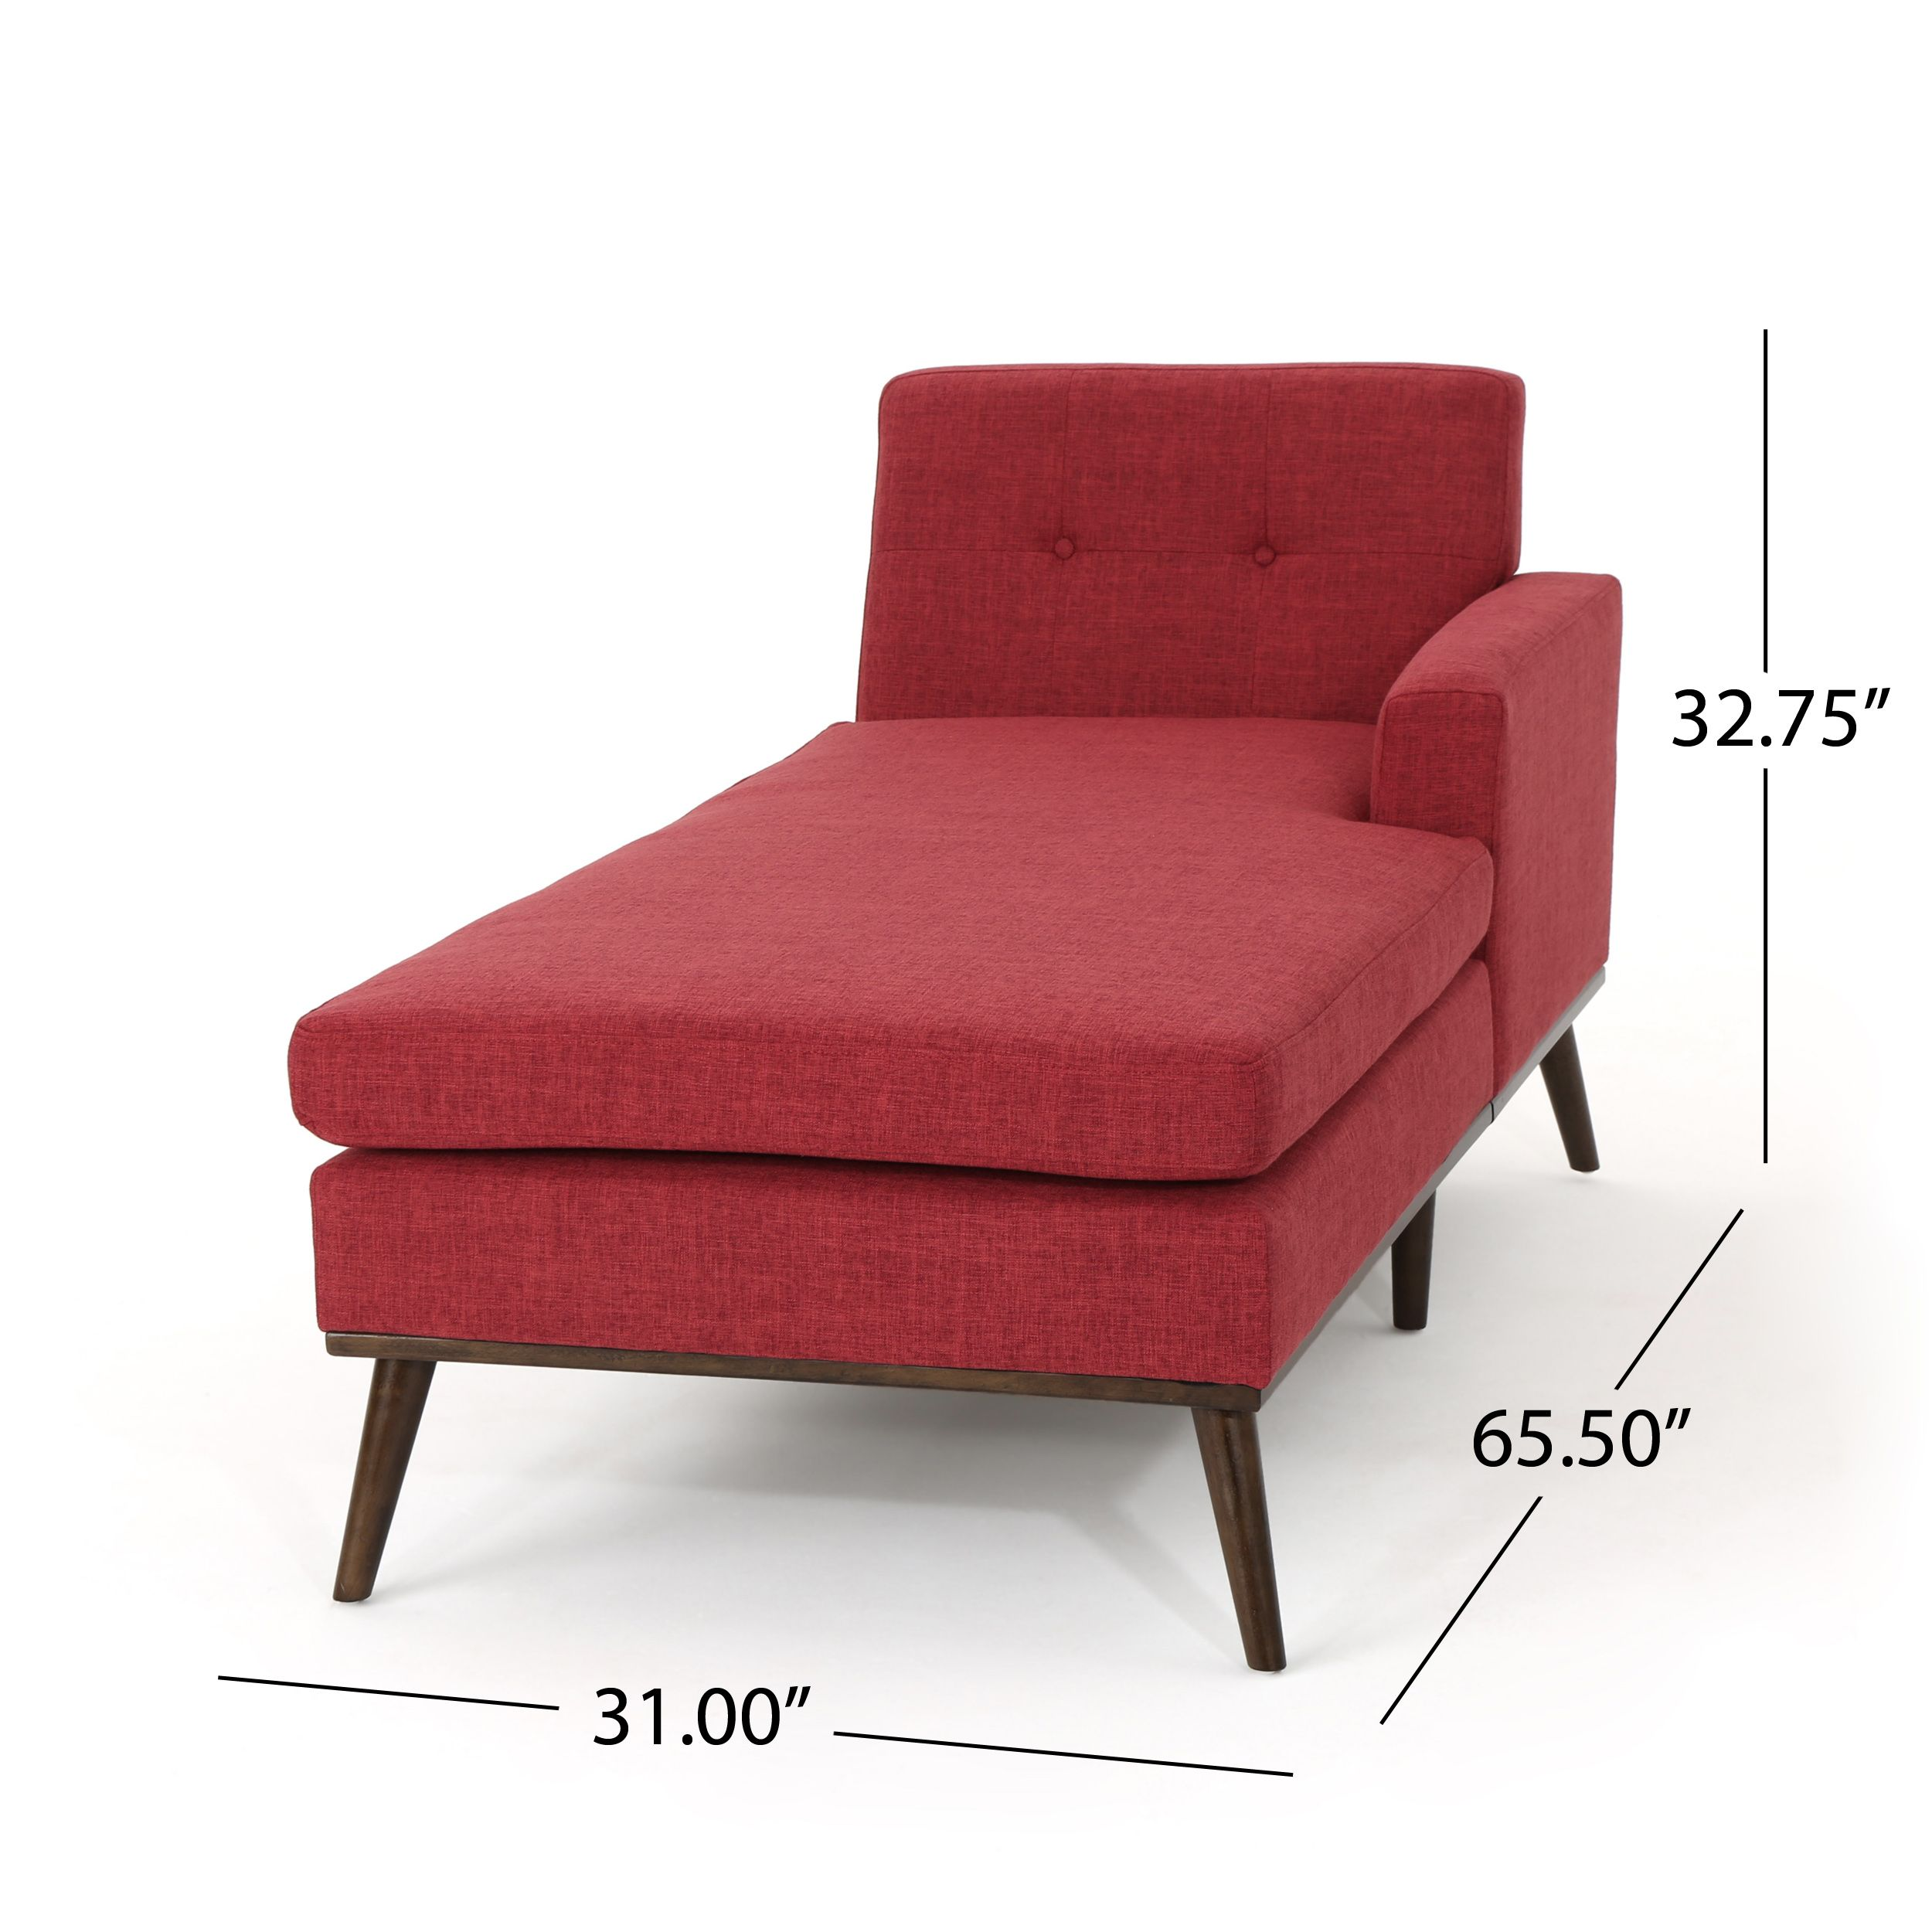 Noble House Stella Mid Century Modern Fabric Chaise Lounge Red Walmart Com In 2020 Mid Century Chaise Lounge Chaise Lounge Mid Century Modern Chaise Lounge